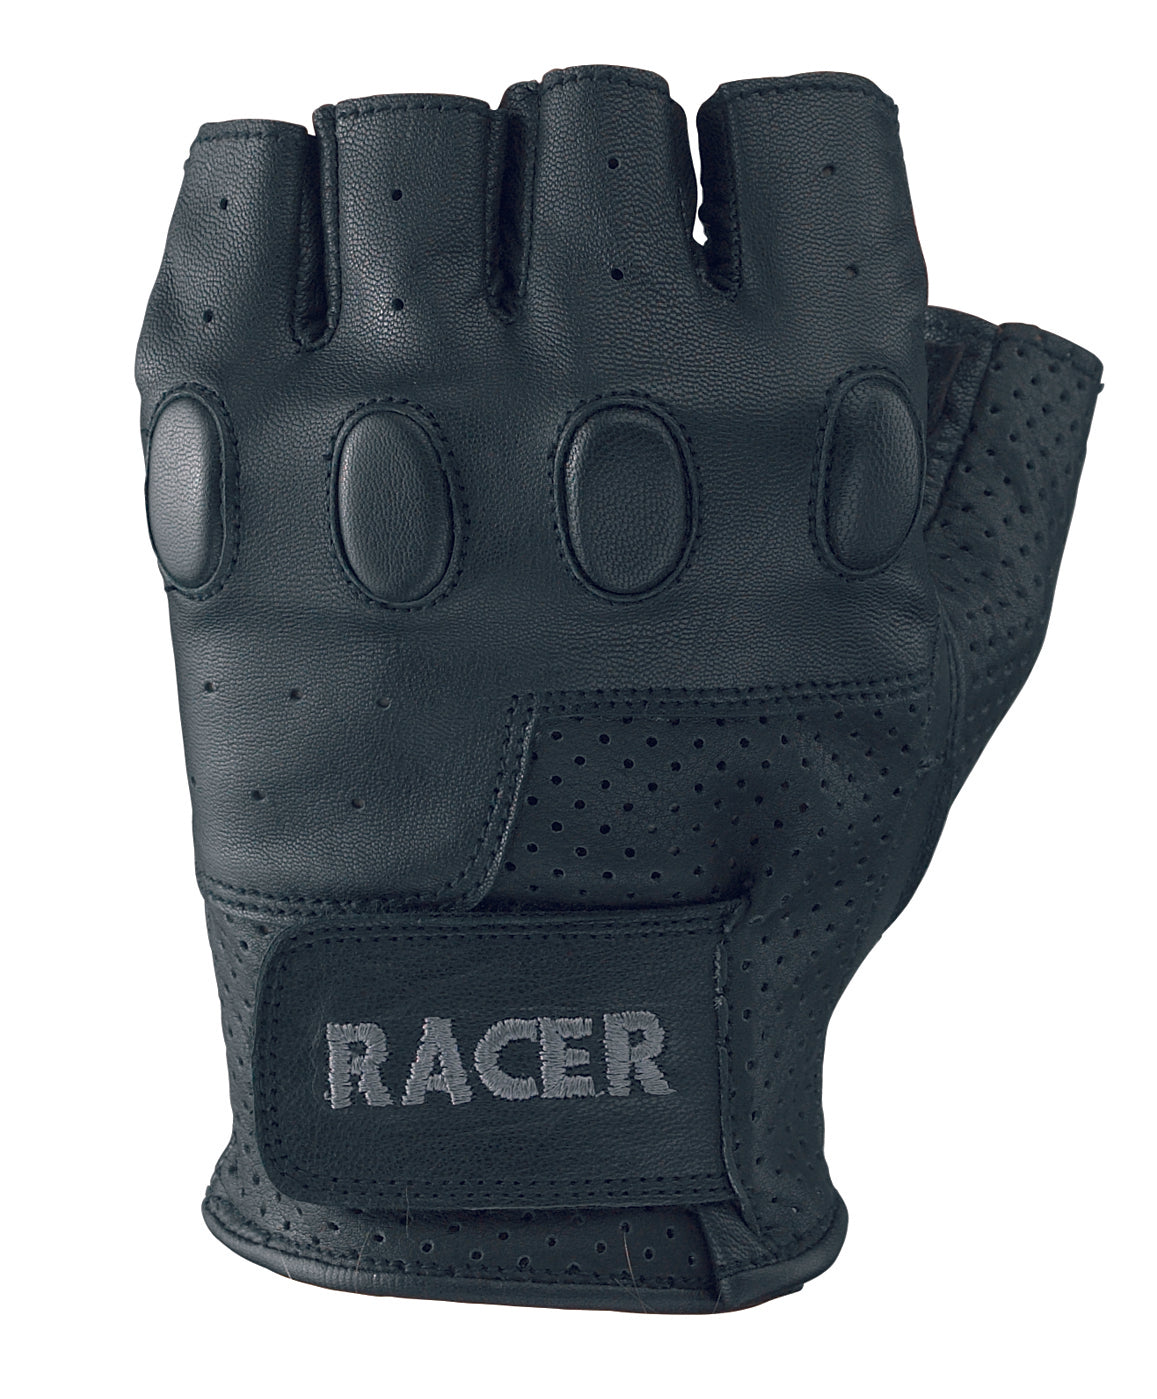 Racer Bubble Gloves, Gloves, Racer - Averys Motorcycles